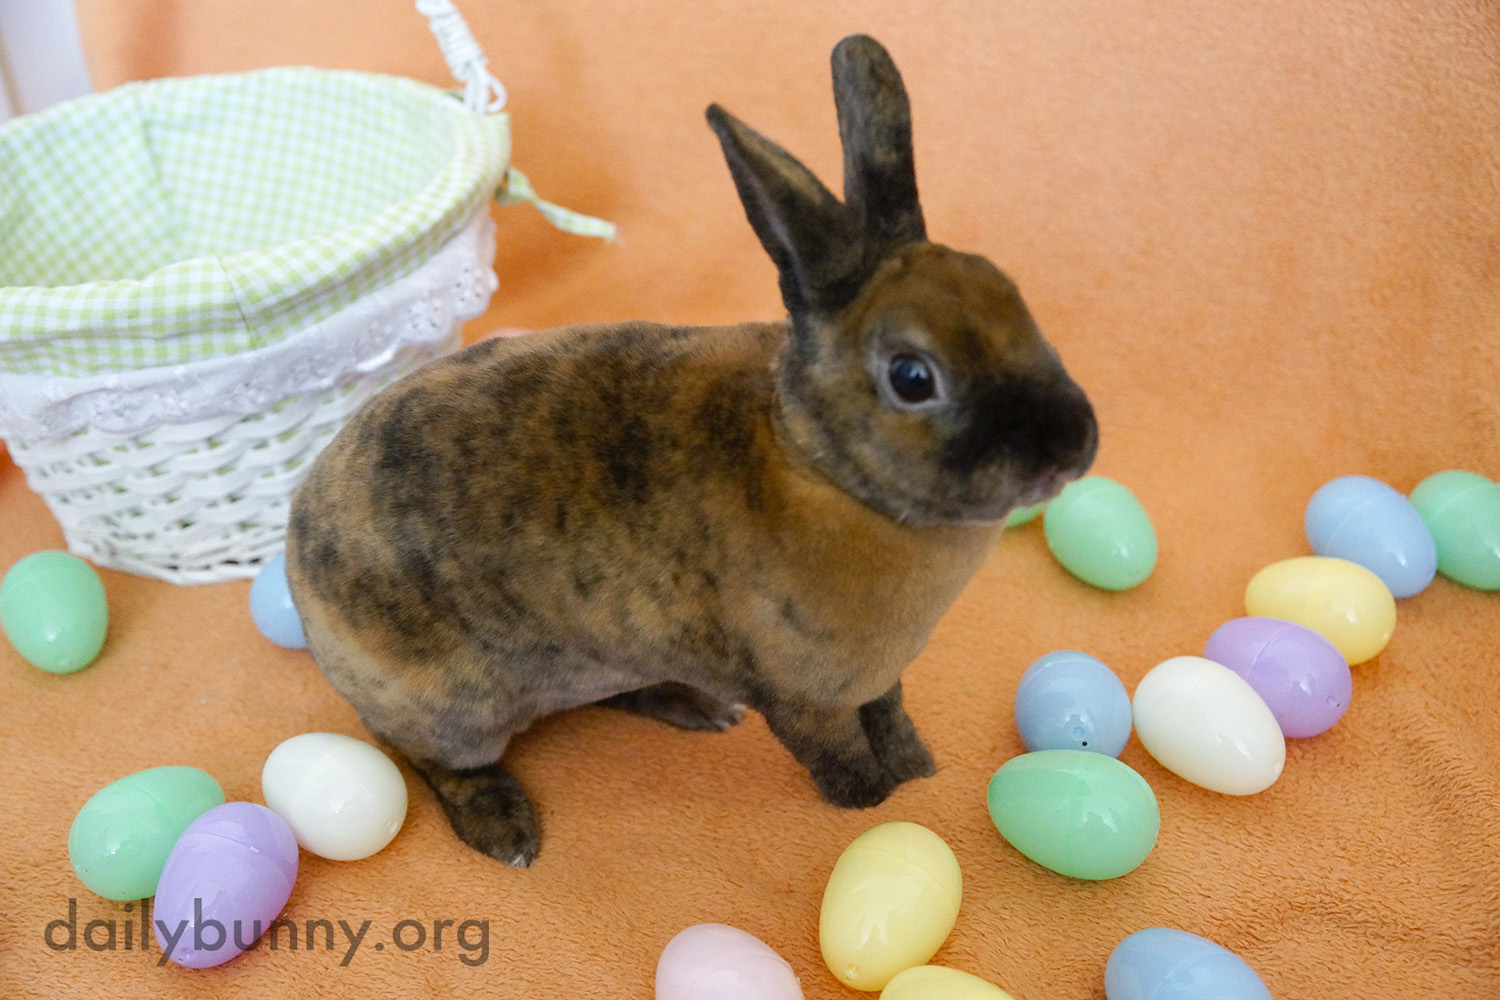 The Daily Bunny's Easter 2014 Mega-Post! 1